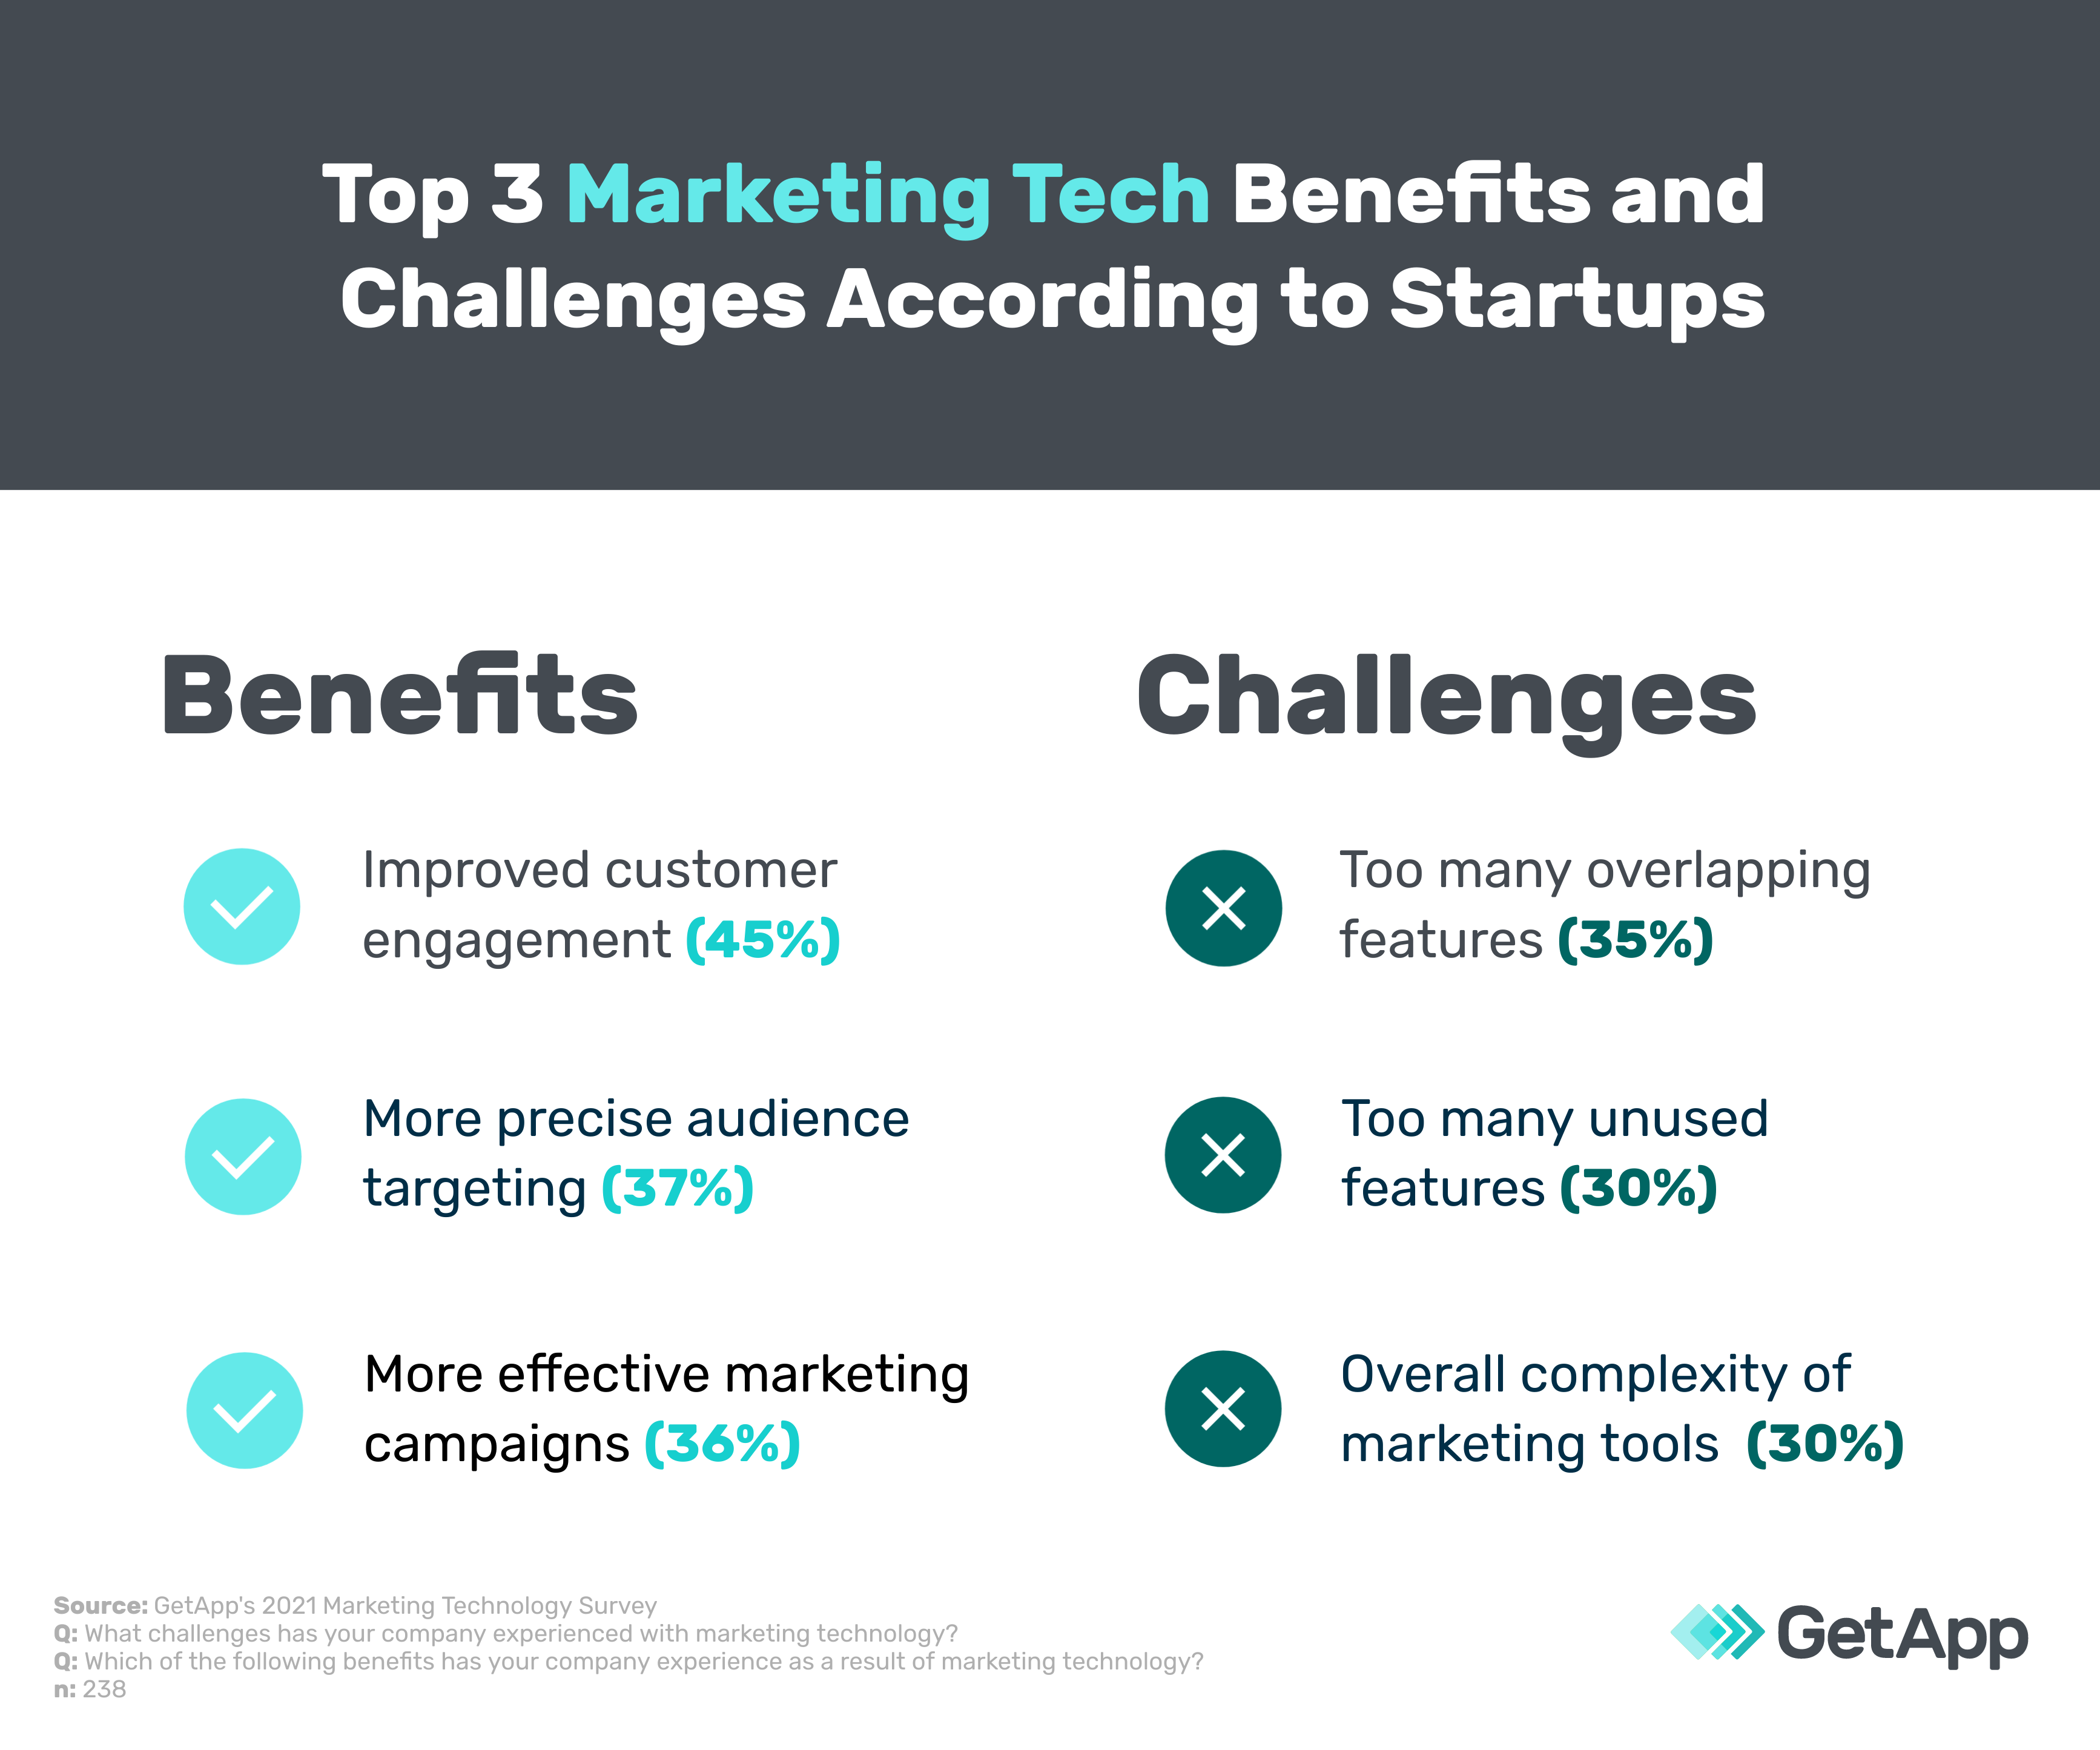 Top 3 Marketing Tech Benefits and Challenges According to Startups